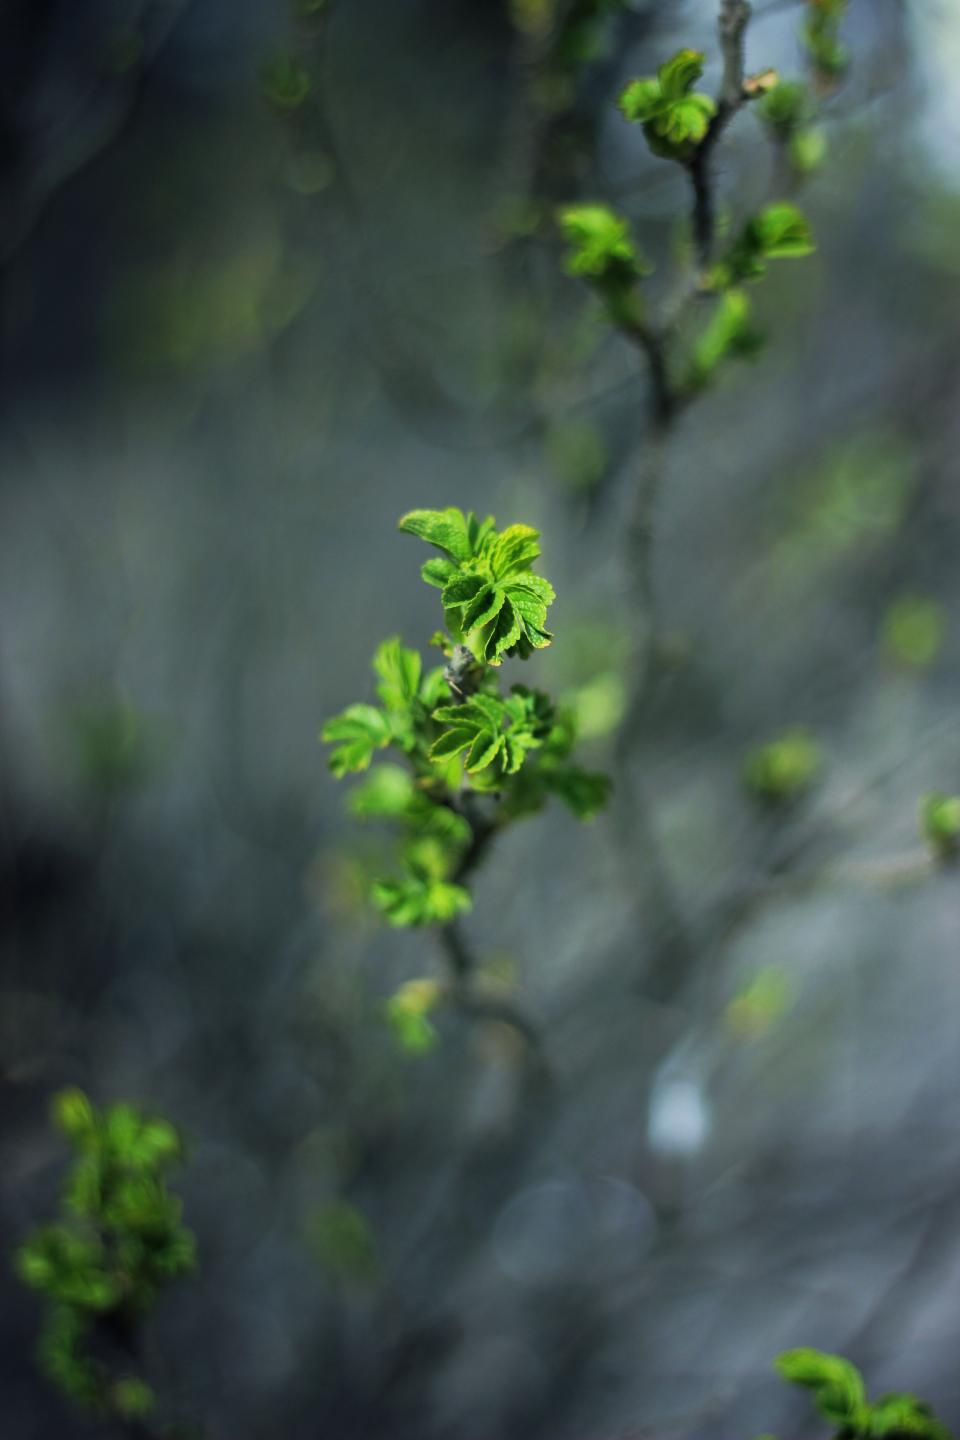 green leaf plant nature blur